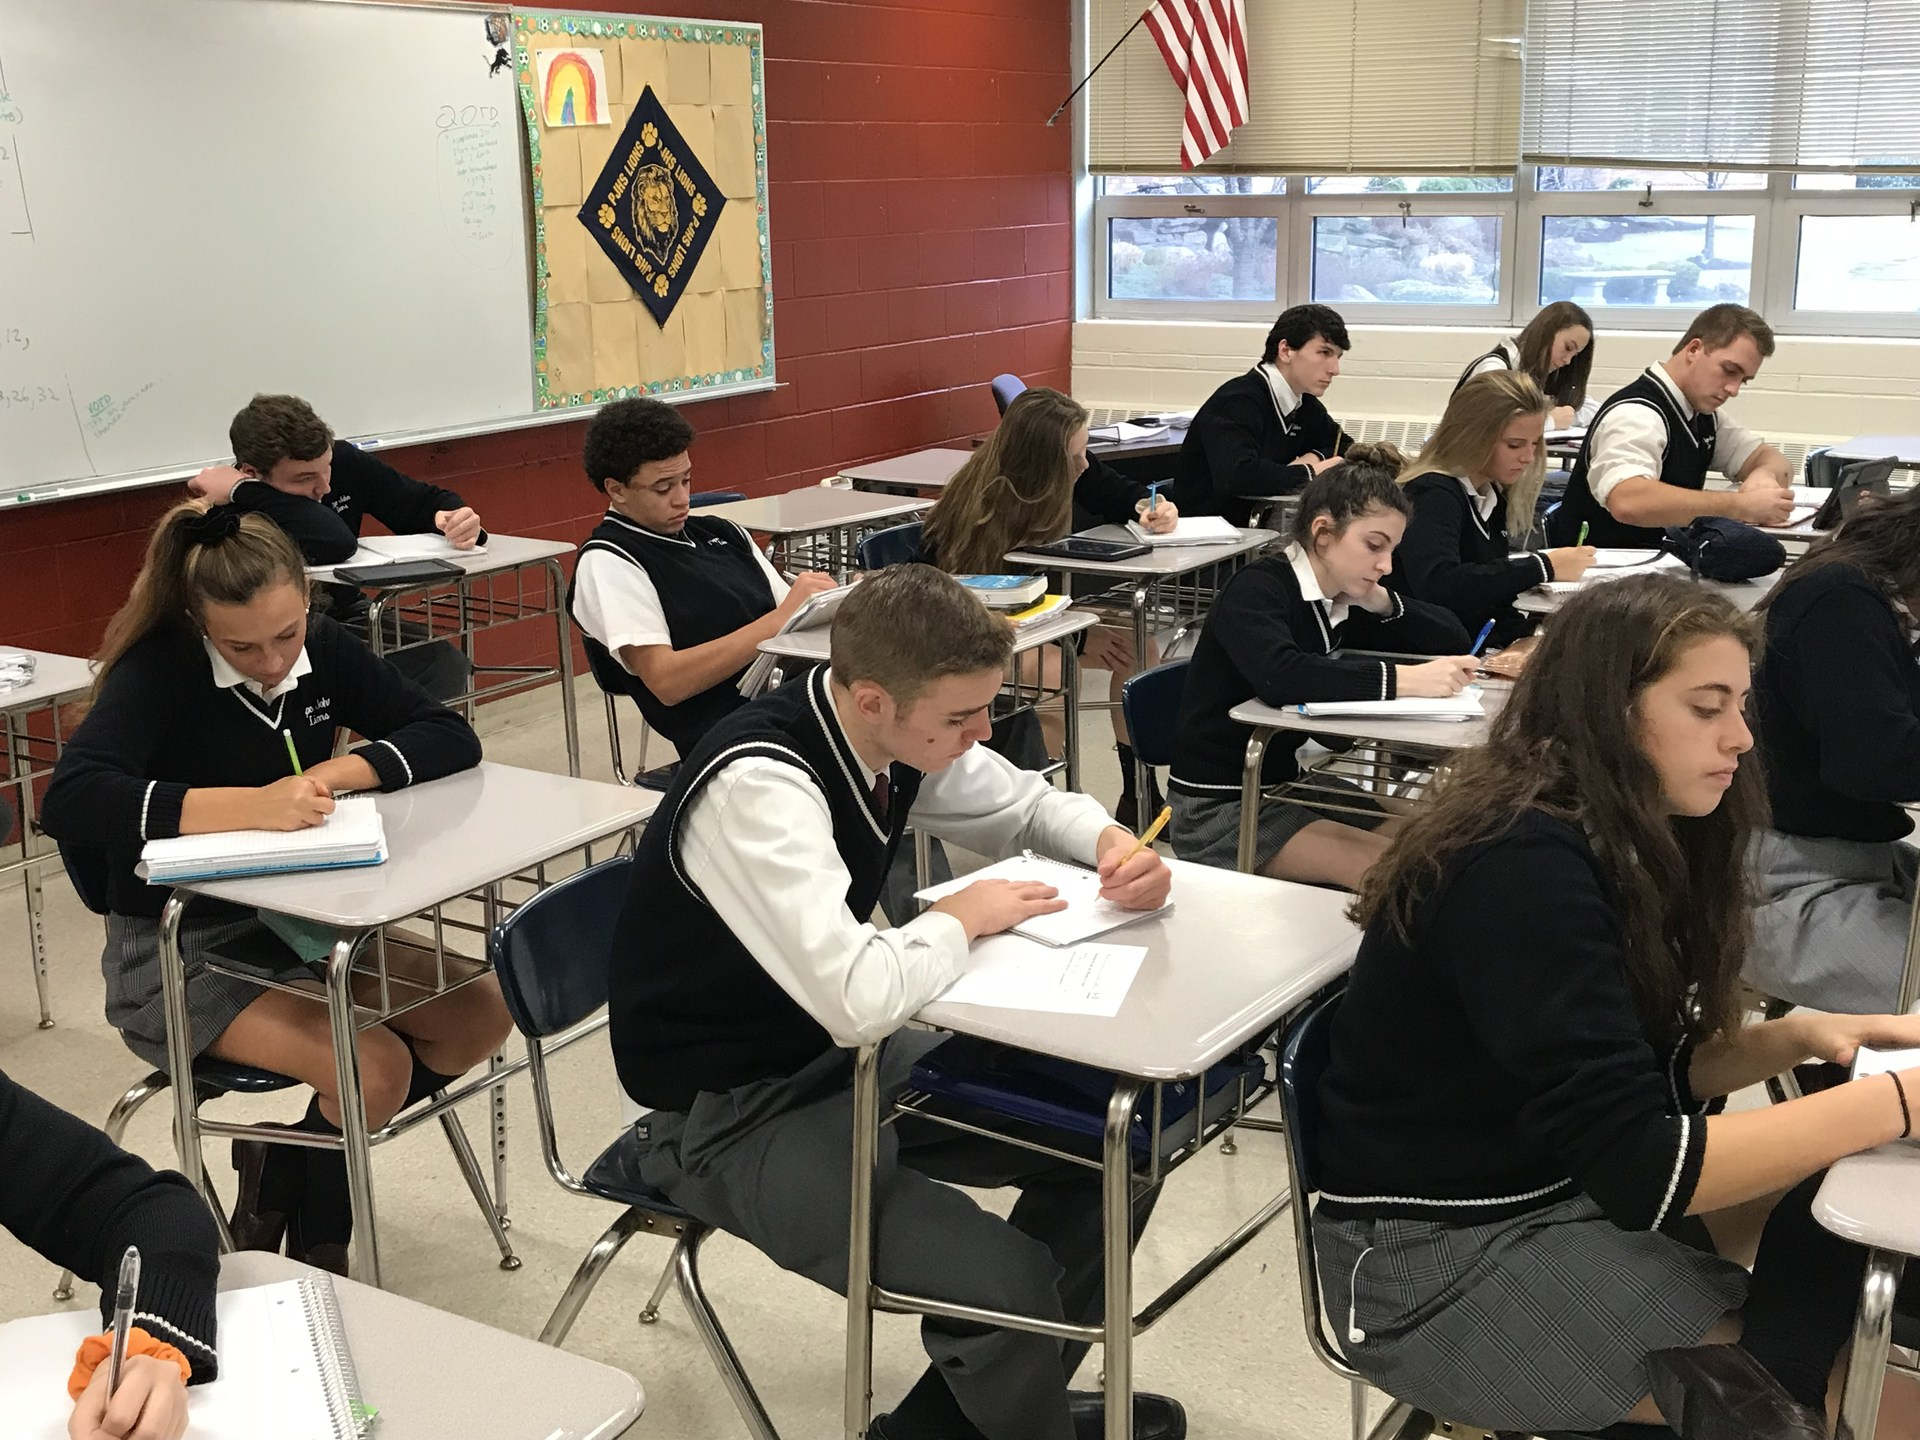 Students writing notes down in class